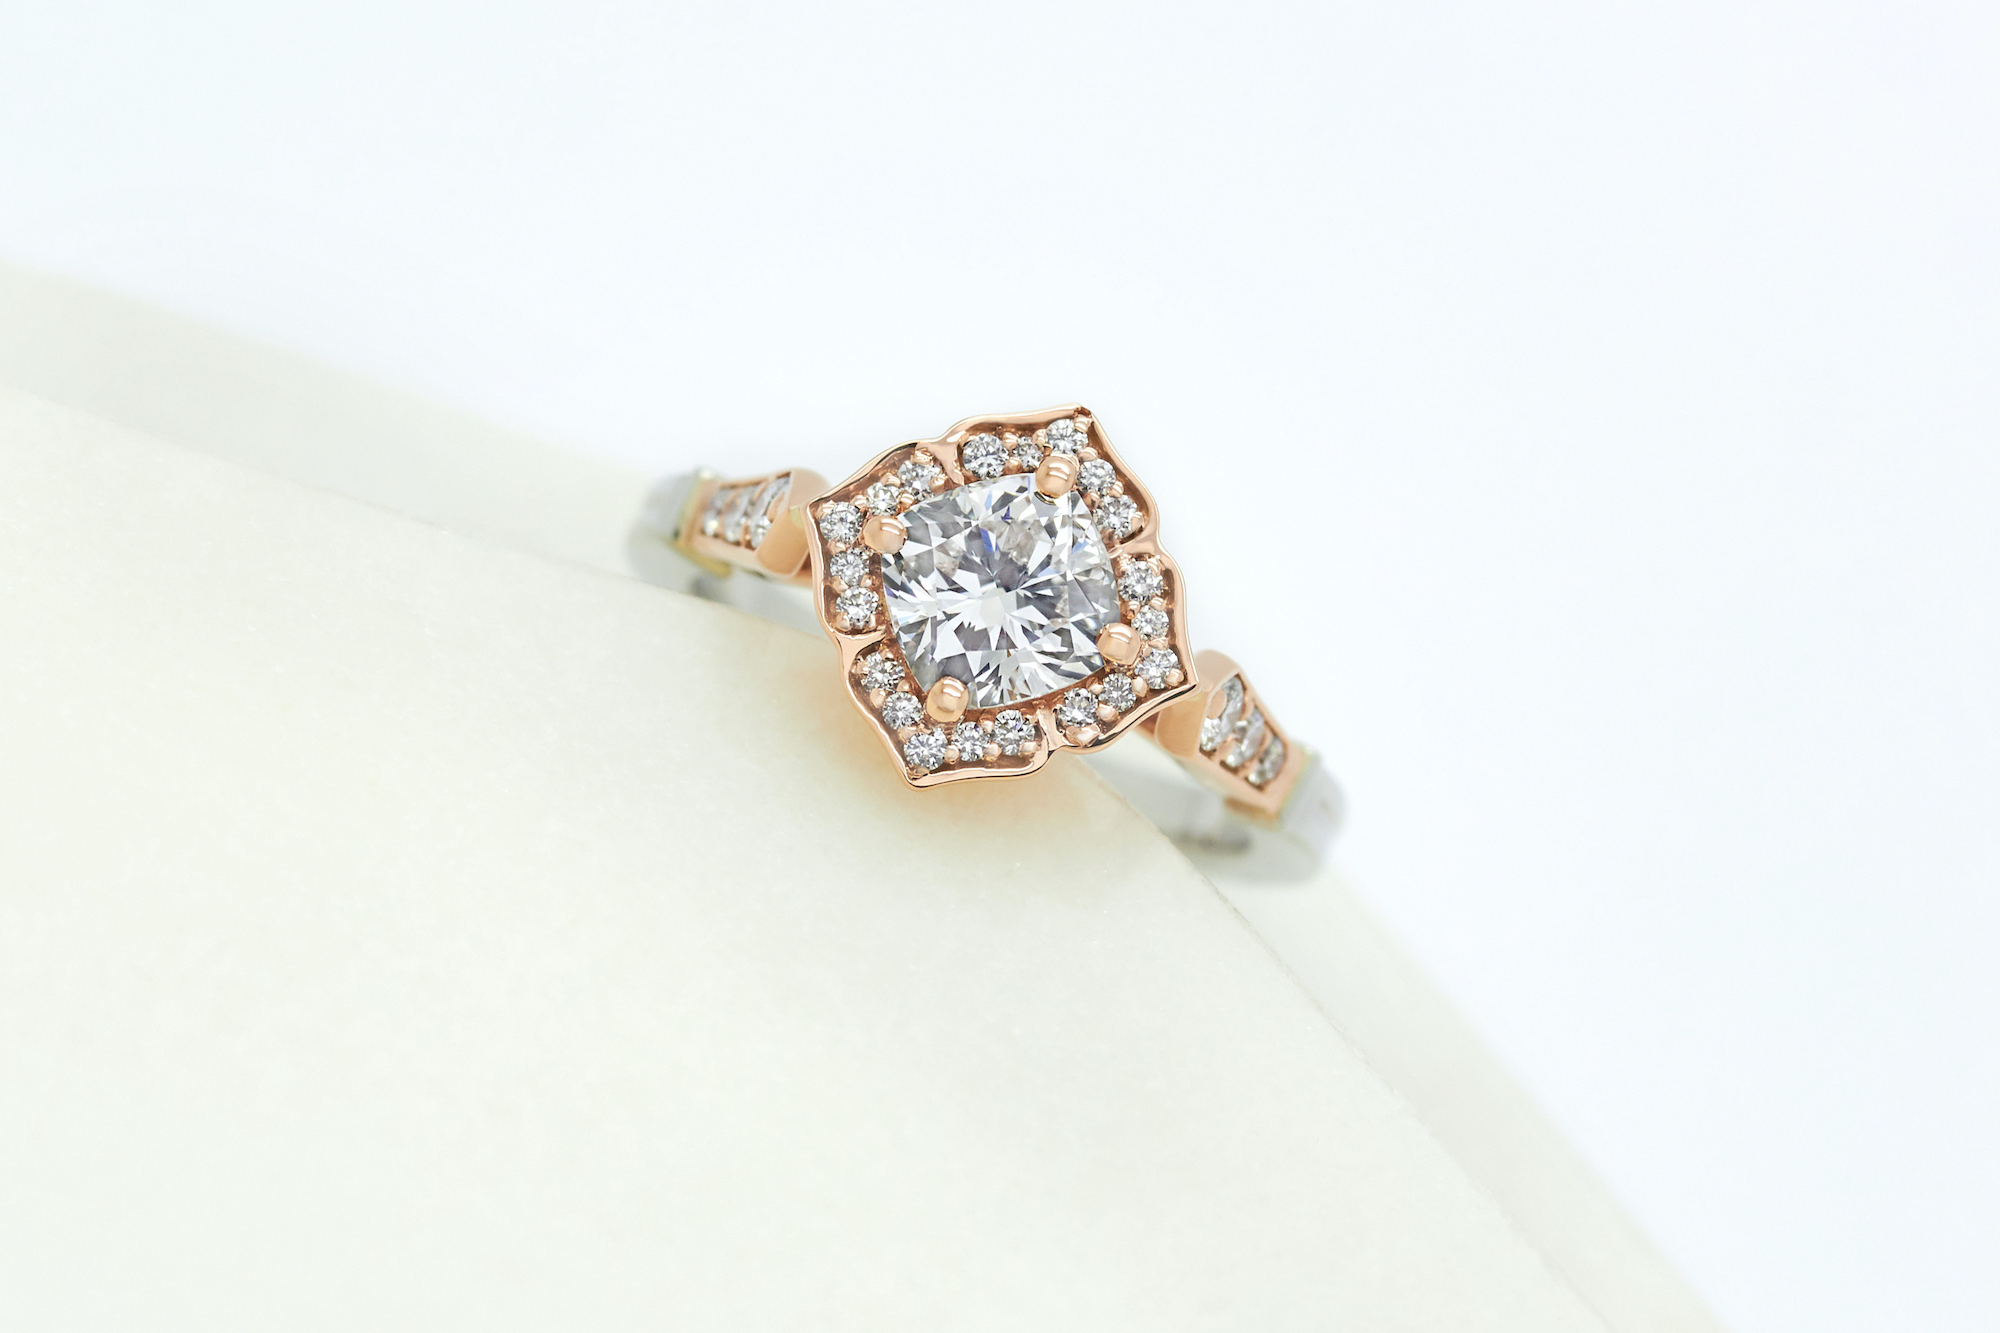 mixed metal engagement ring with organic inspired halo